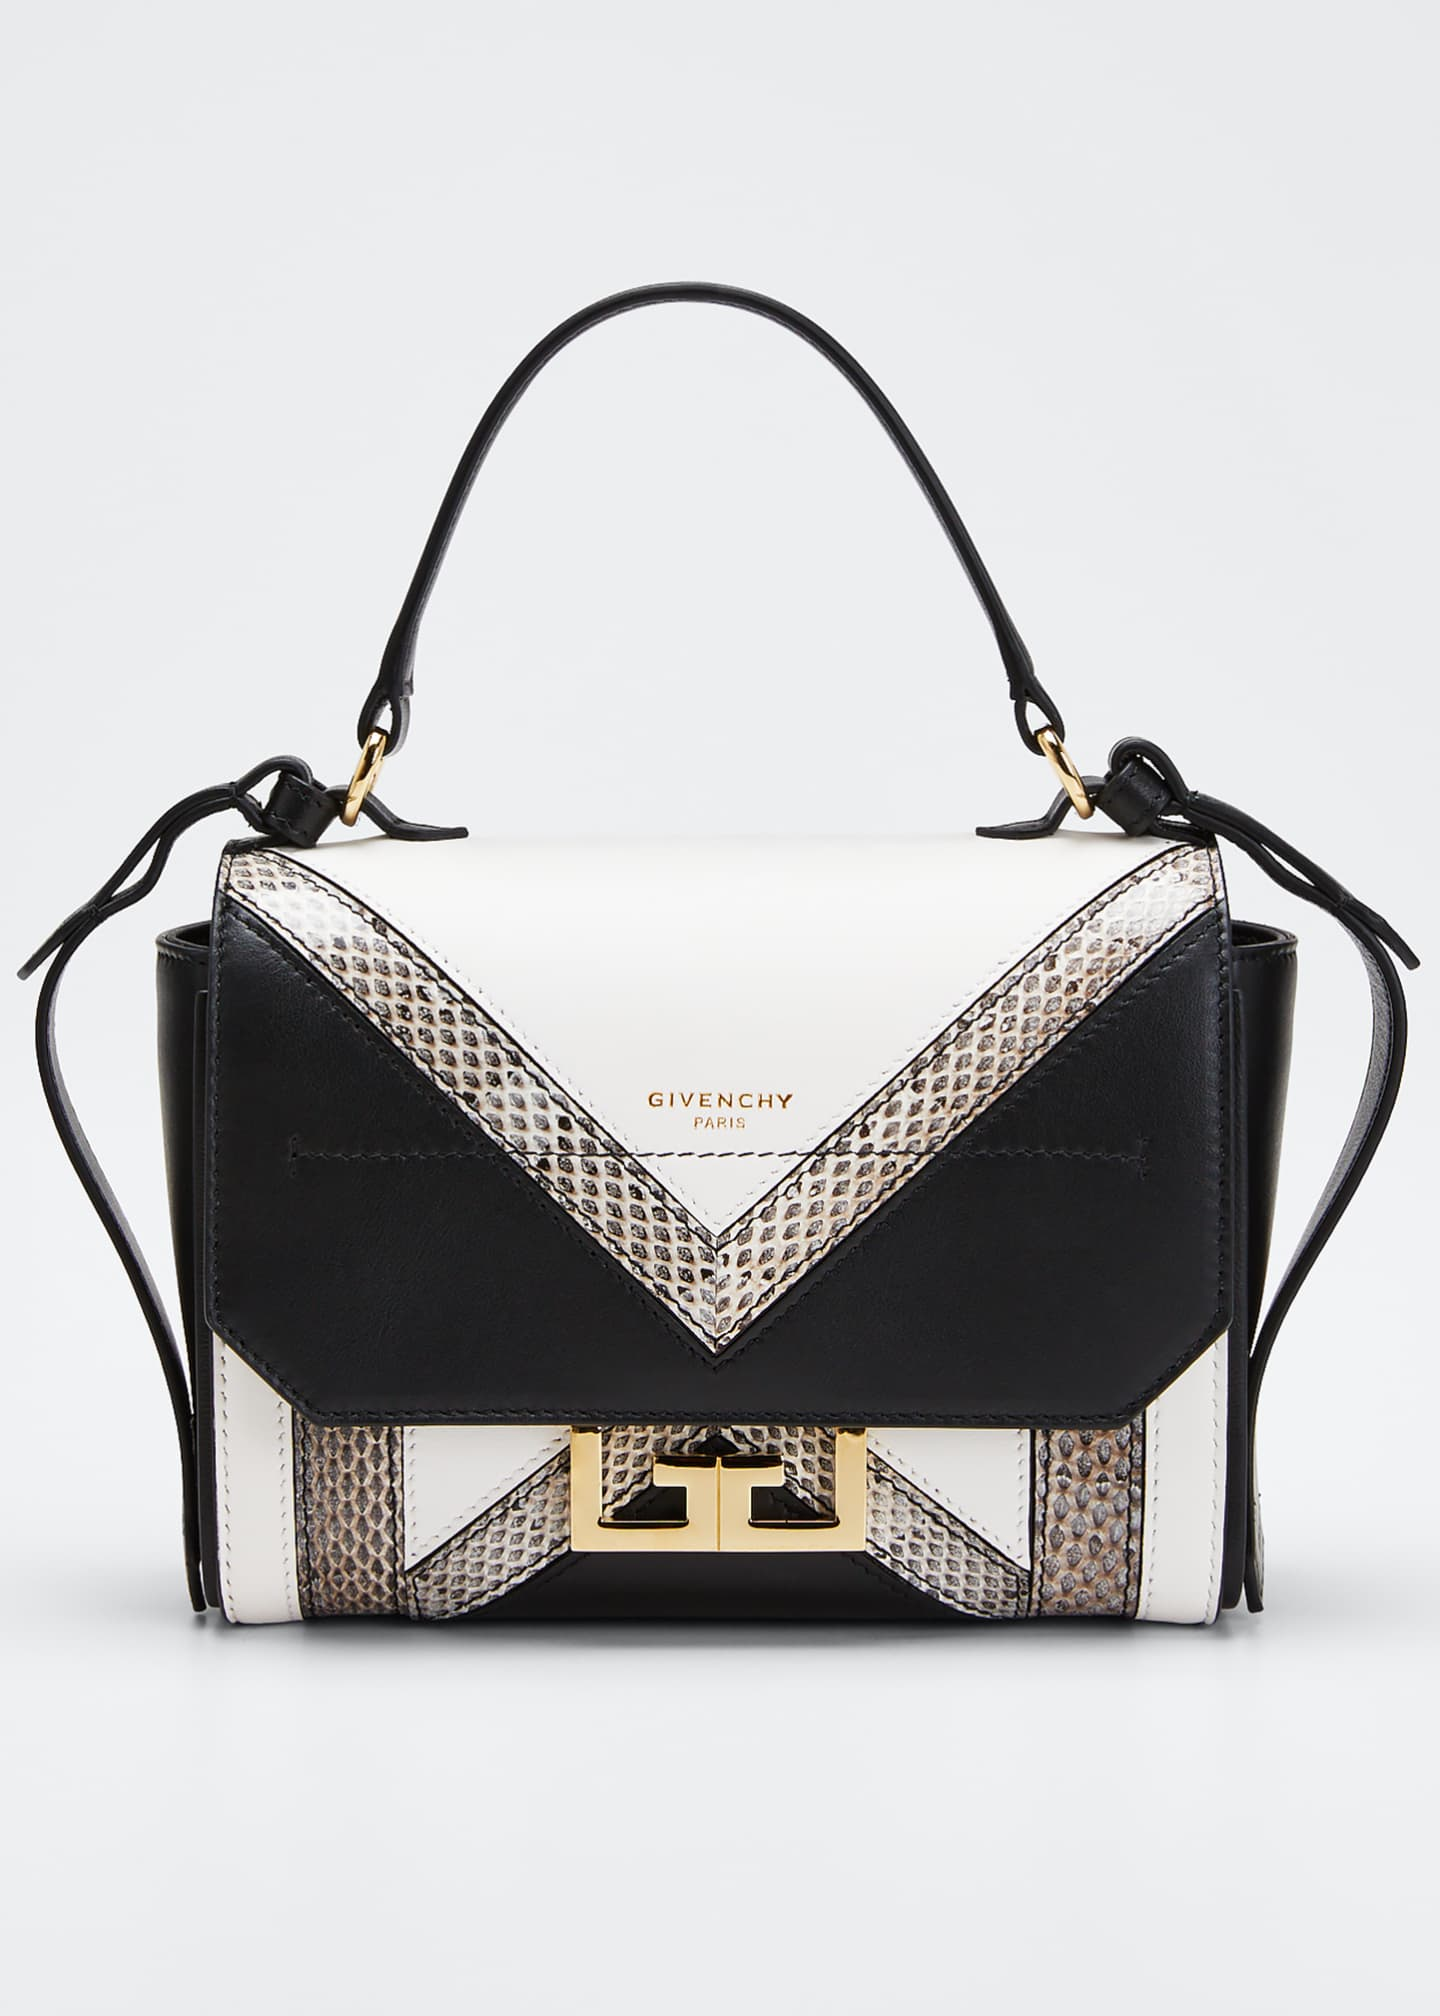 Givenchy Eden Mini Colorblock Snakeskin Shoulder Bag